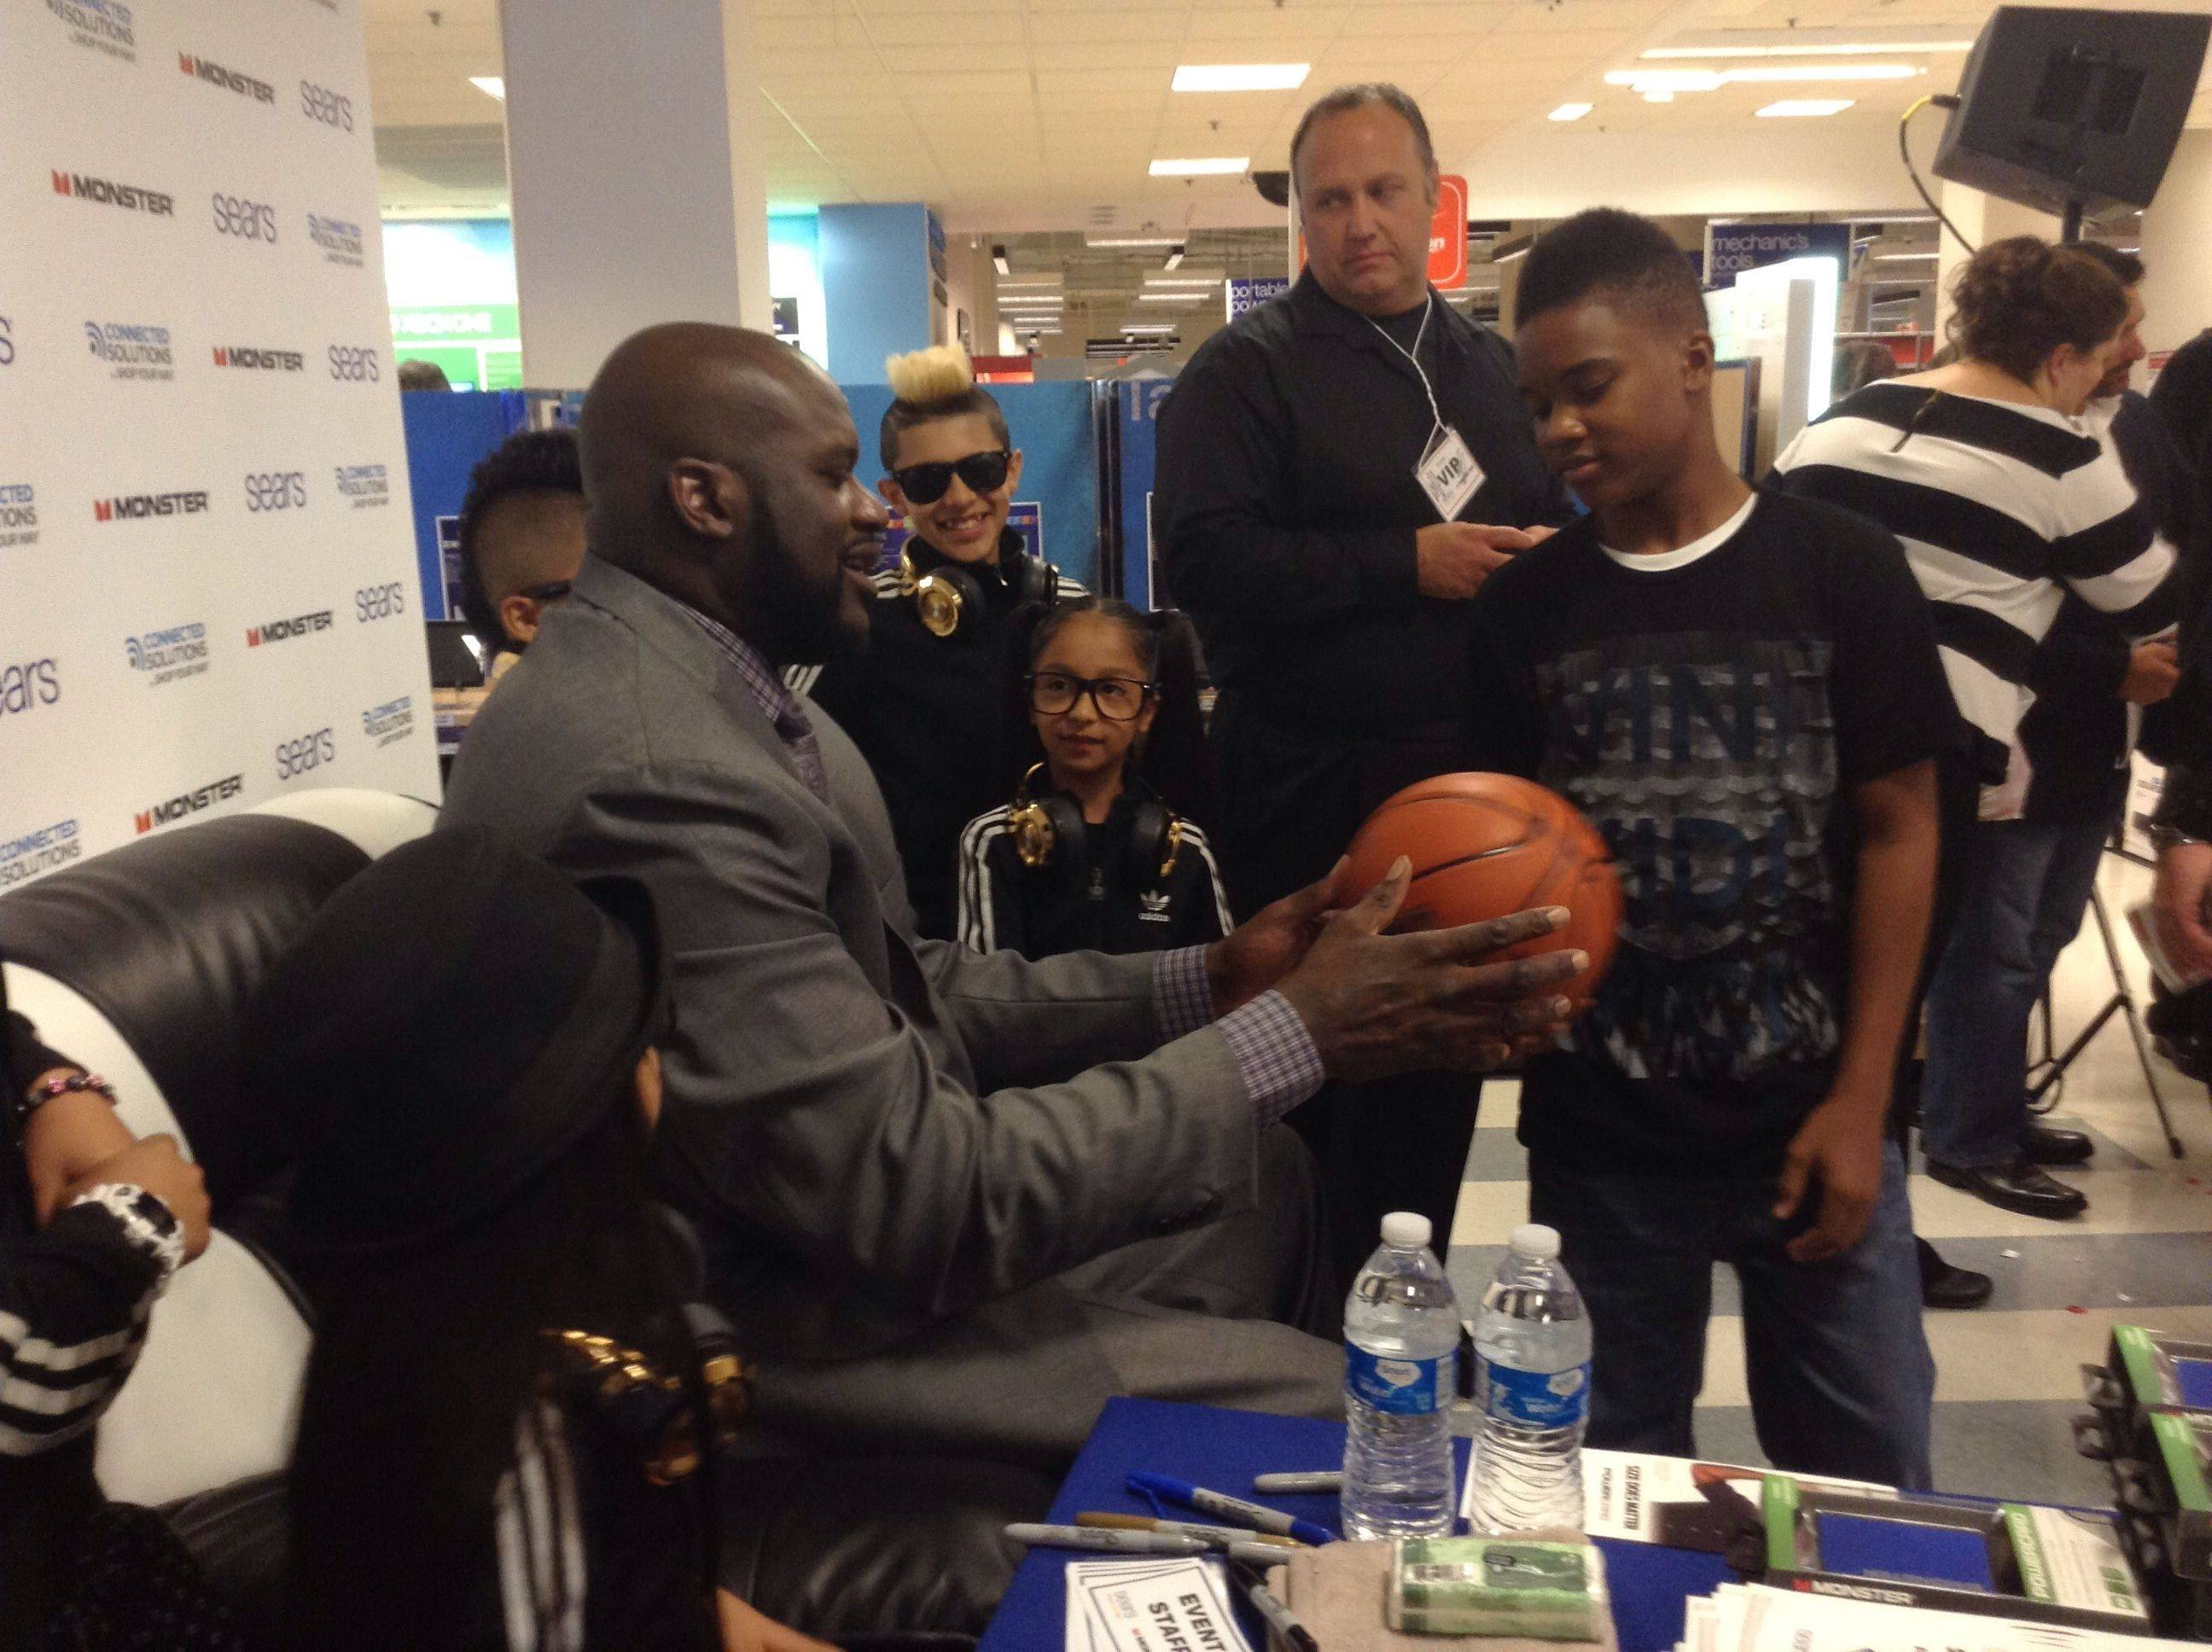 Former NBA all-star and four-time league champion Shaquille O'Neal greeted fans Wednesday at the Sears store in Woodfield Mall.